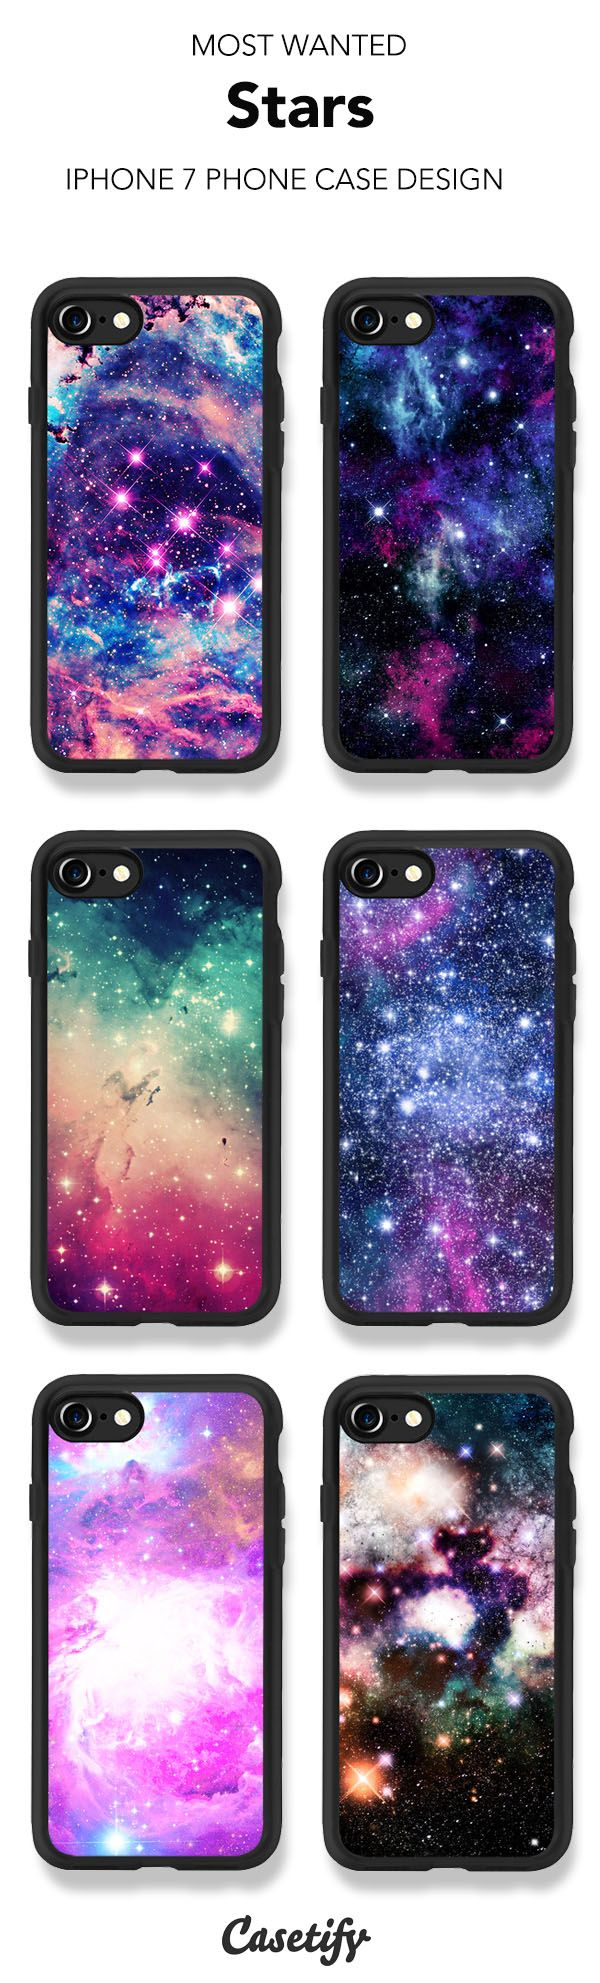 Most wanted Star iPhone 7 and iPhone 7 Plus case. Shop them all here >   https://www.casetify.com/artworks/ynJpZLMMsr